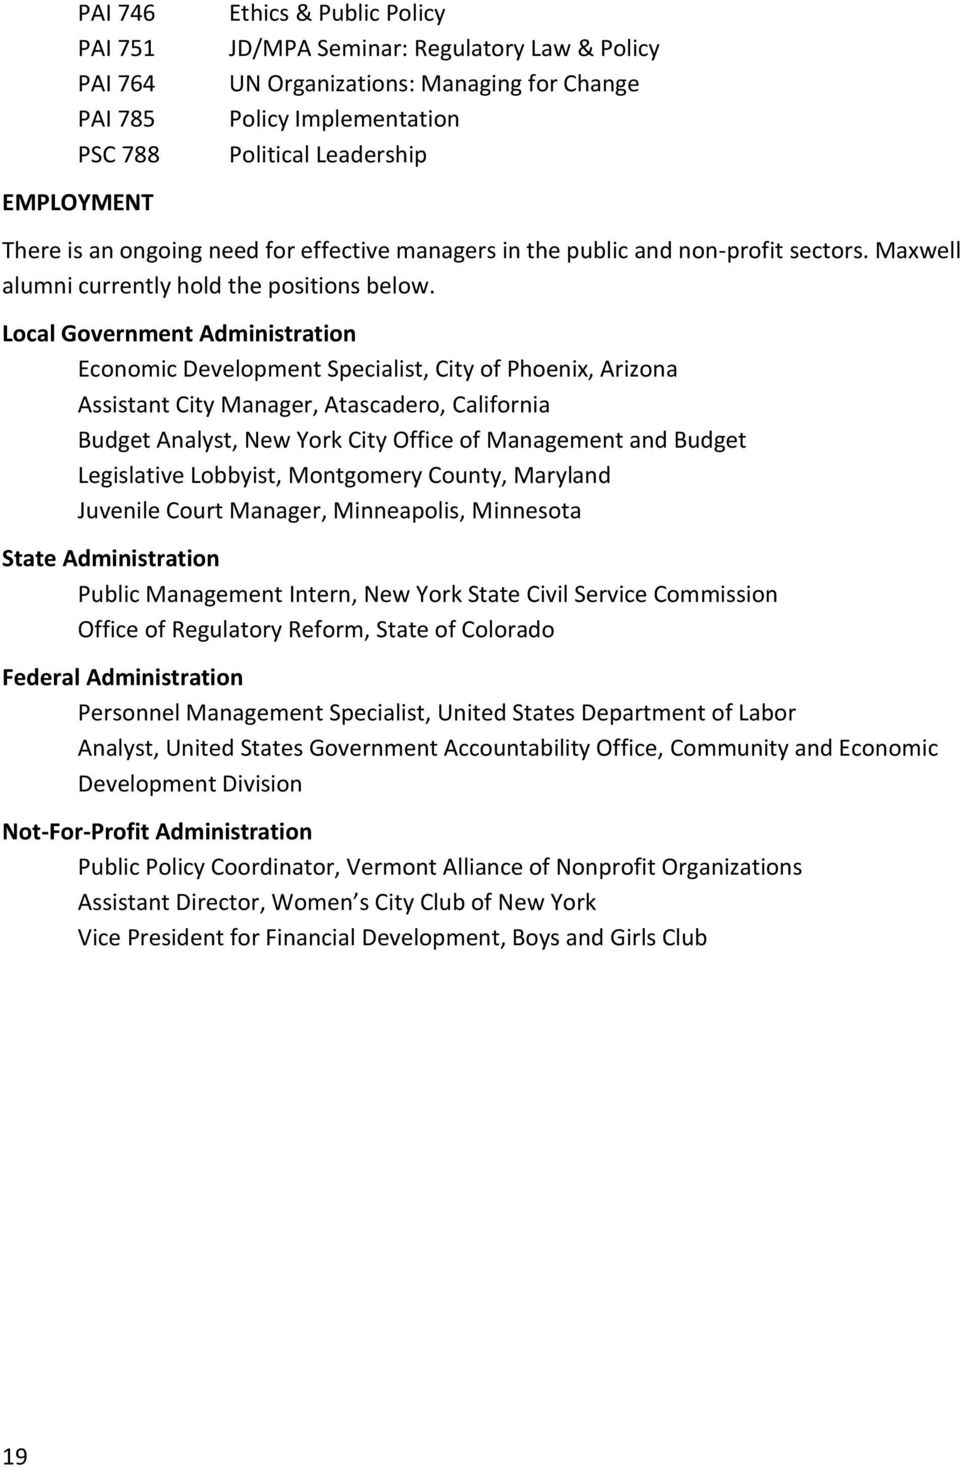 Local Government Administration Economic Development Specialist, City of Phoenix, Arizona Assistant City Manager, Atascadero, California Budget Analyst, New York City Office of Management and Budget